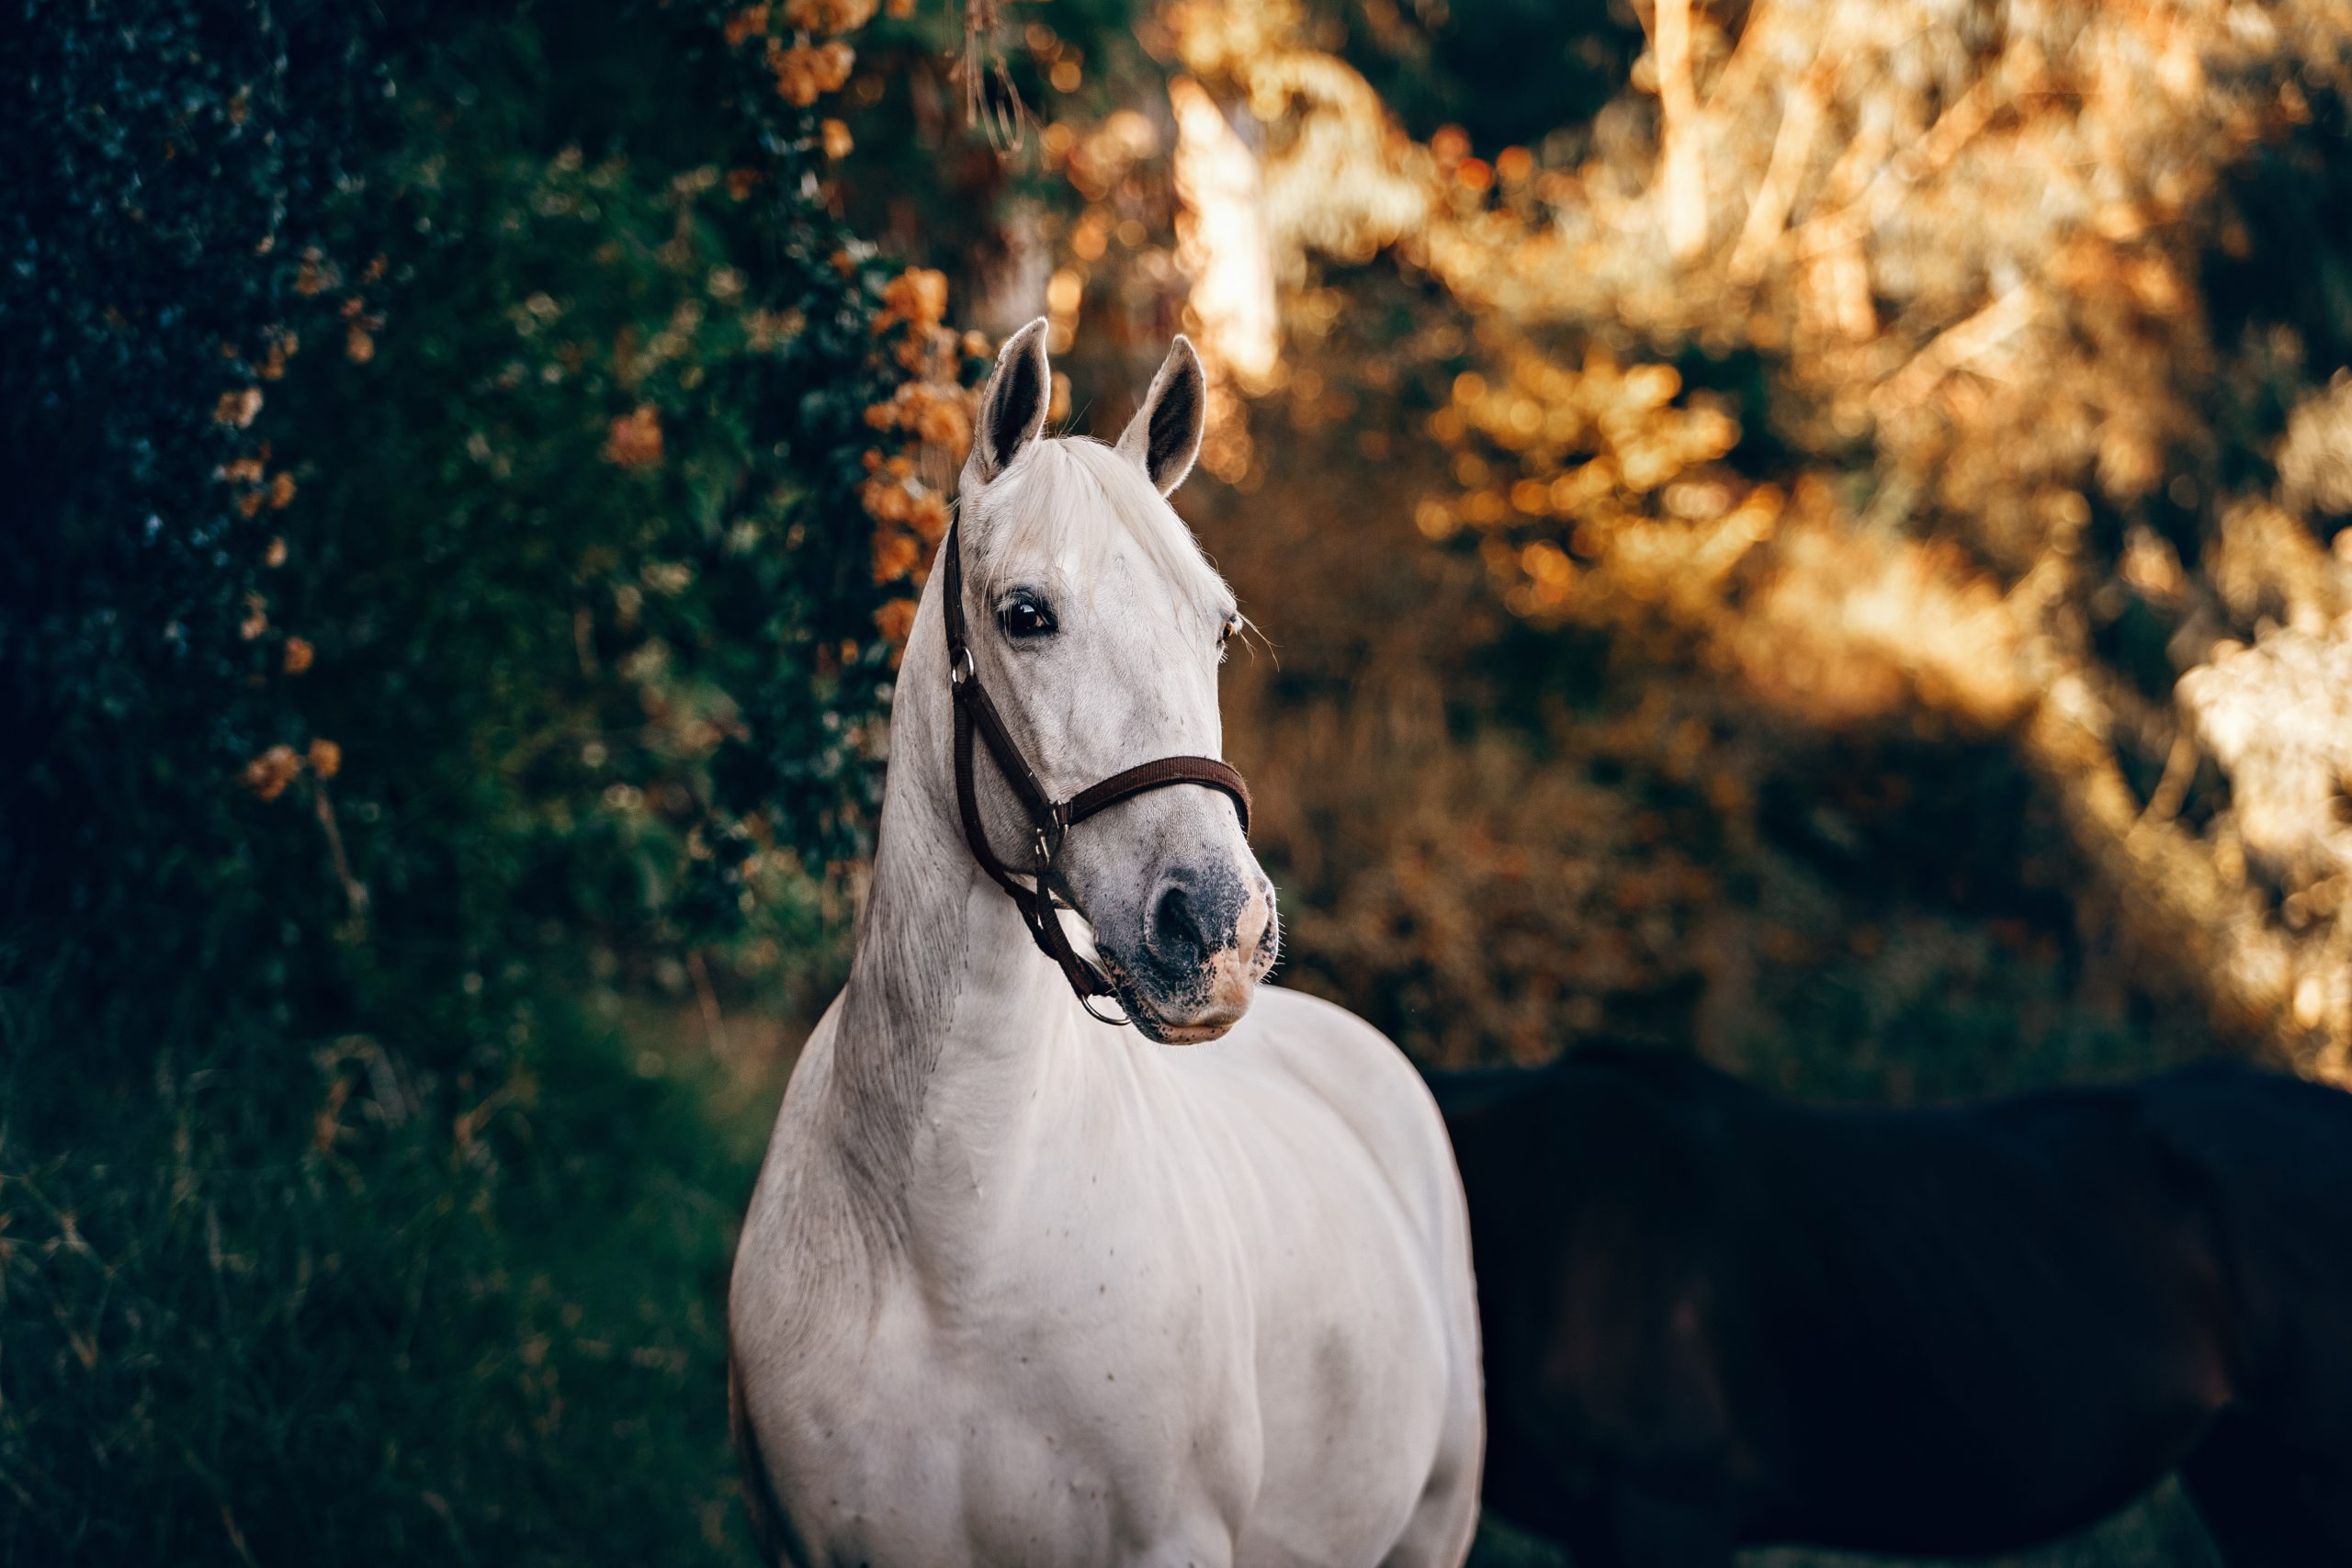 Horses can heal at Riverview Manor